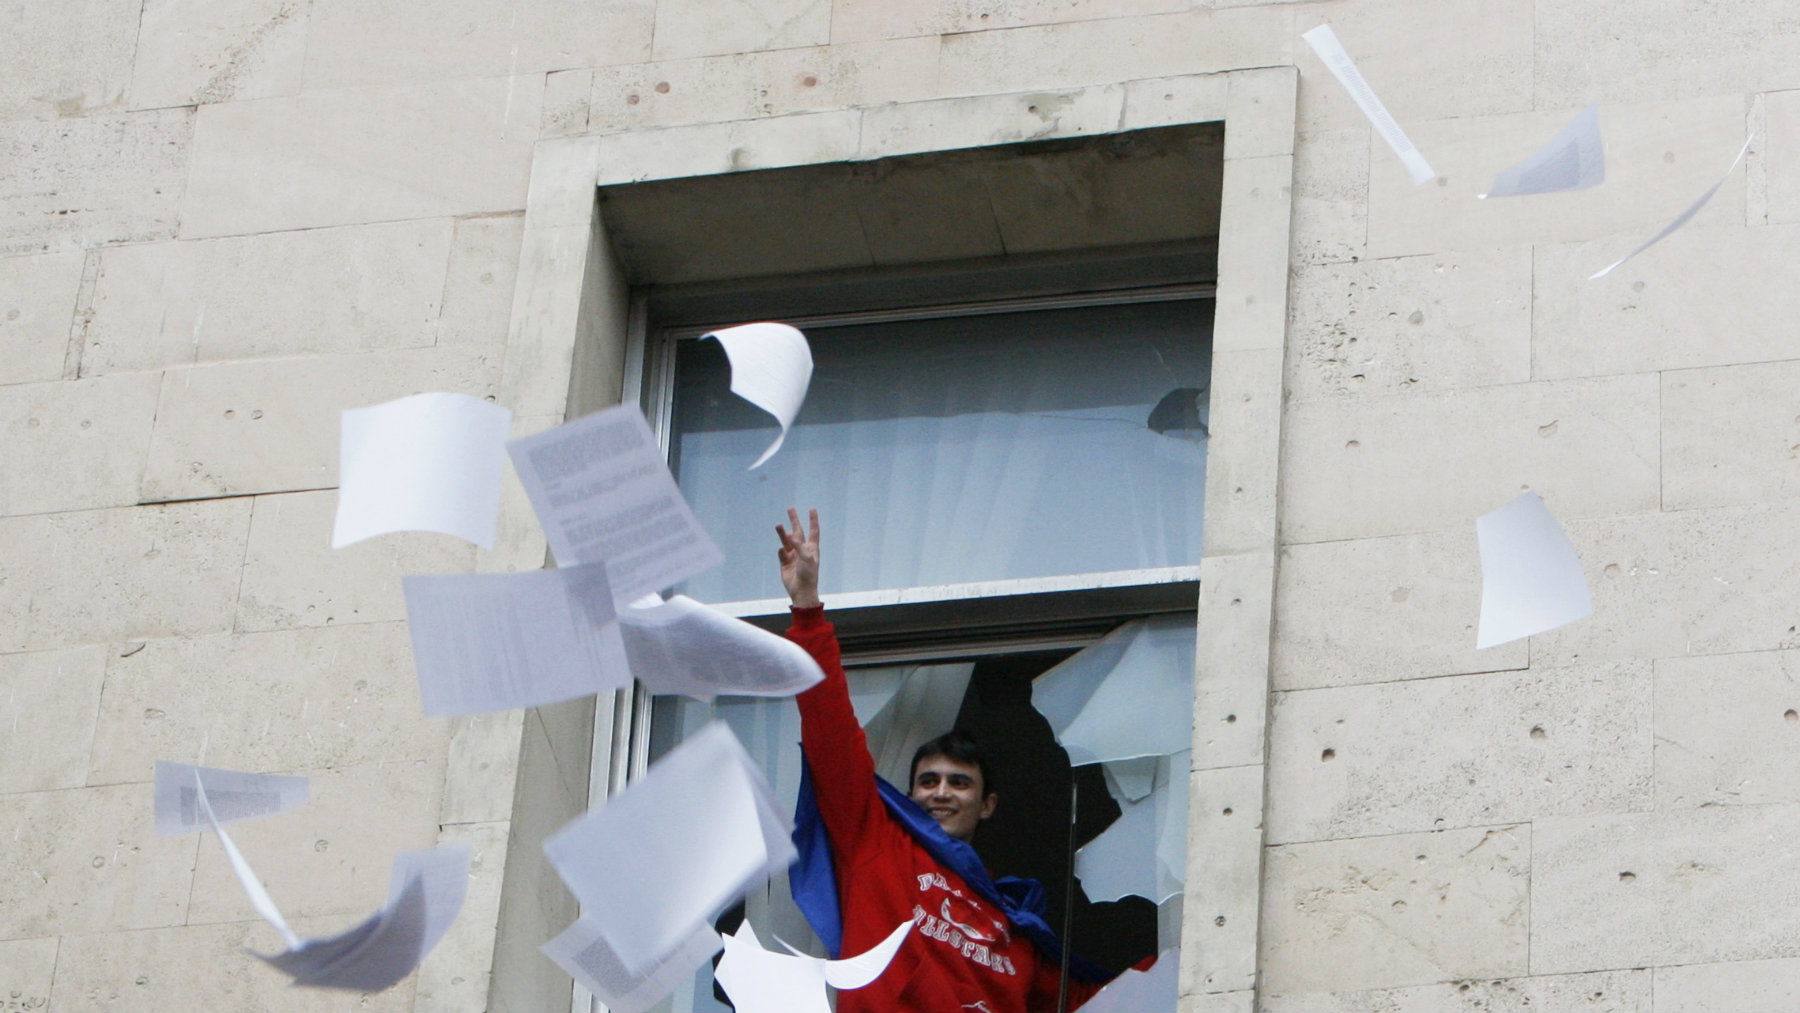 A man throws documents out of a window of the parliament building in Chisinau, Moldova.